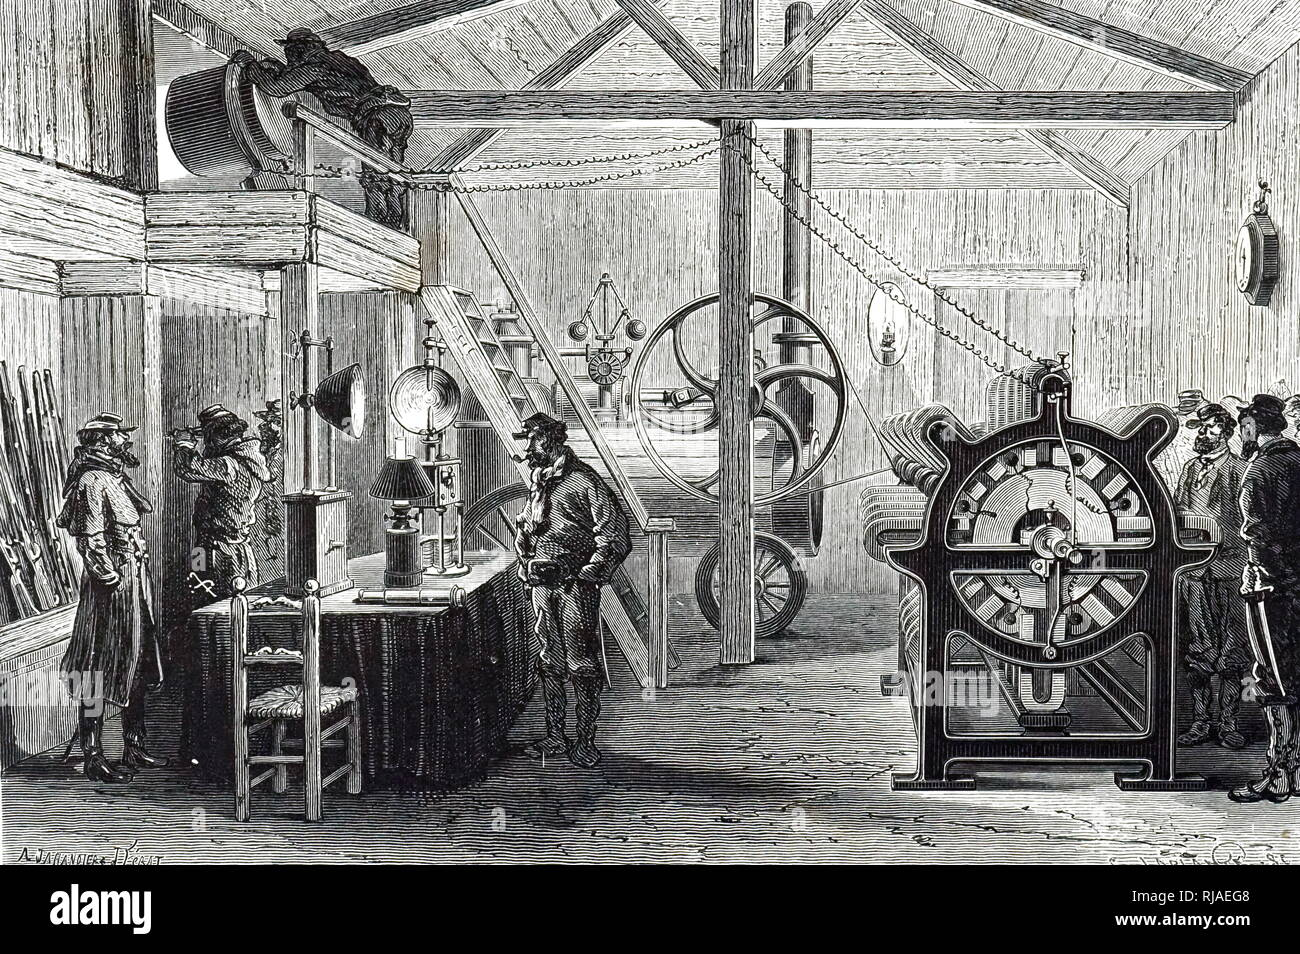 An engraving depicting an appliance generator being used to supply light at Montmartre during the Siege of Paris using a steam engine as a source of power. At the top left of the picture, a searchlight directed on some distant object which is being observed by the soldier directly below. On the table are two carbon arc lamps in addition to an oil lamp. Dated 19th century - Stock Image